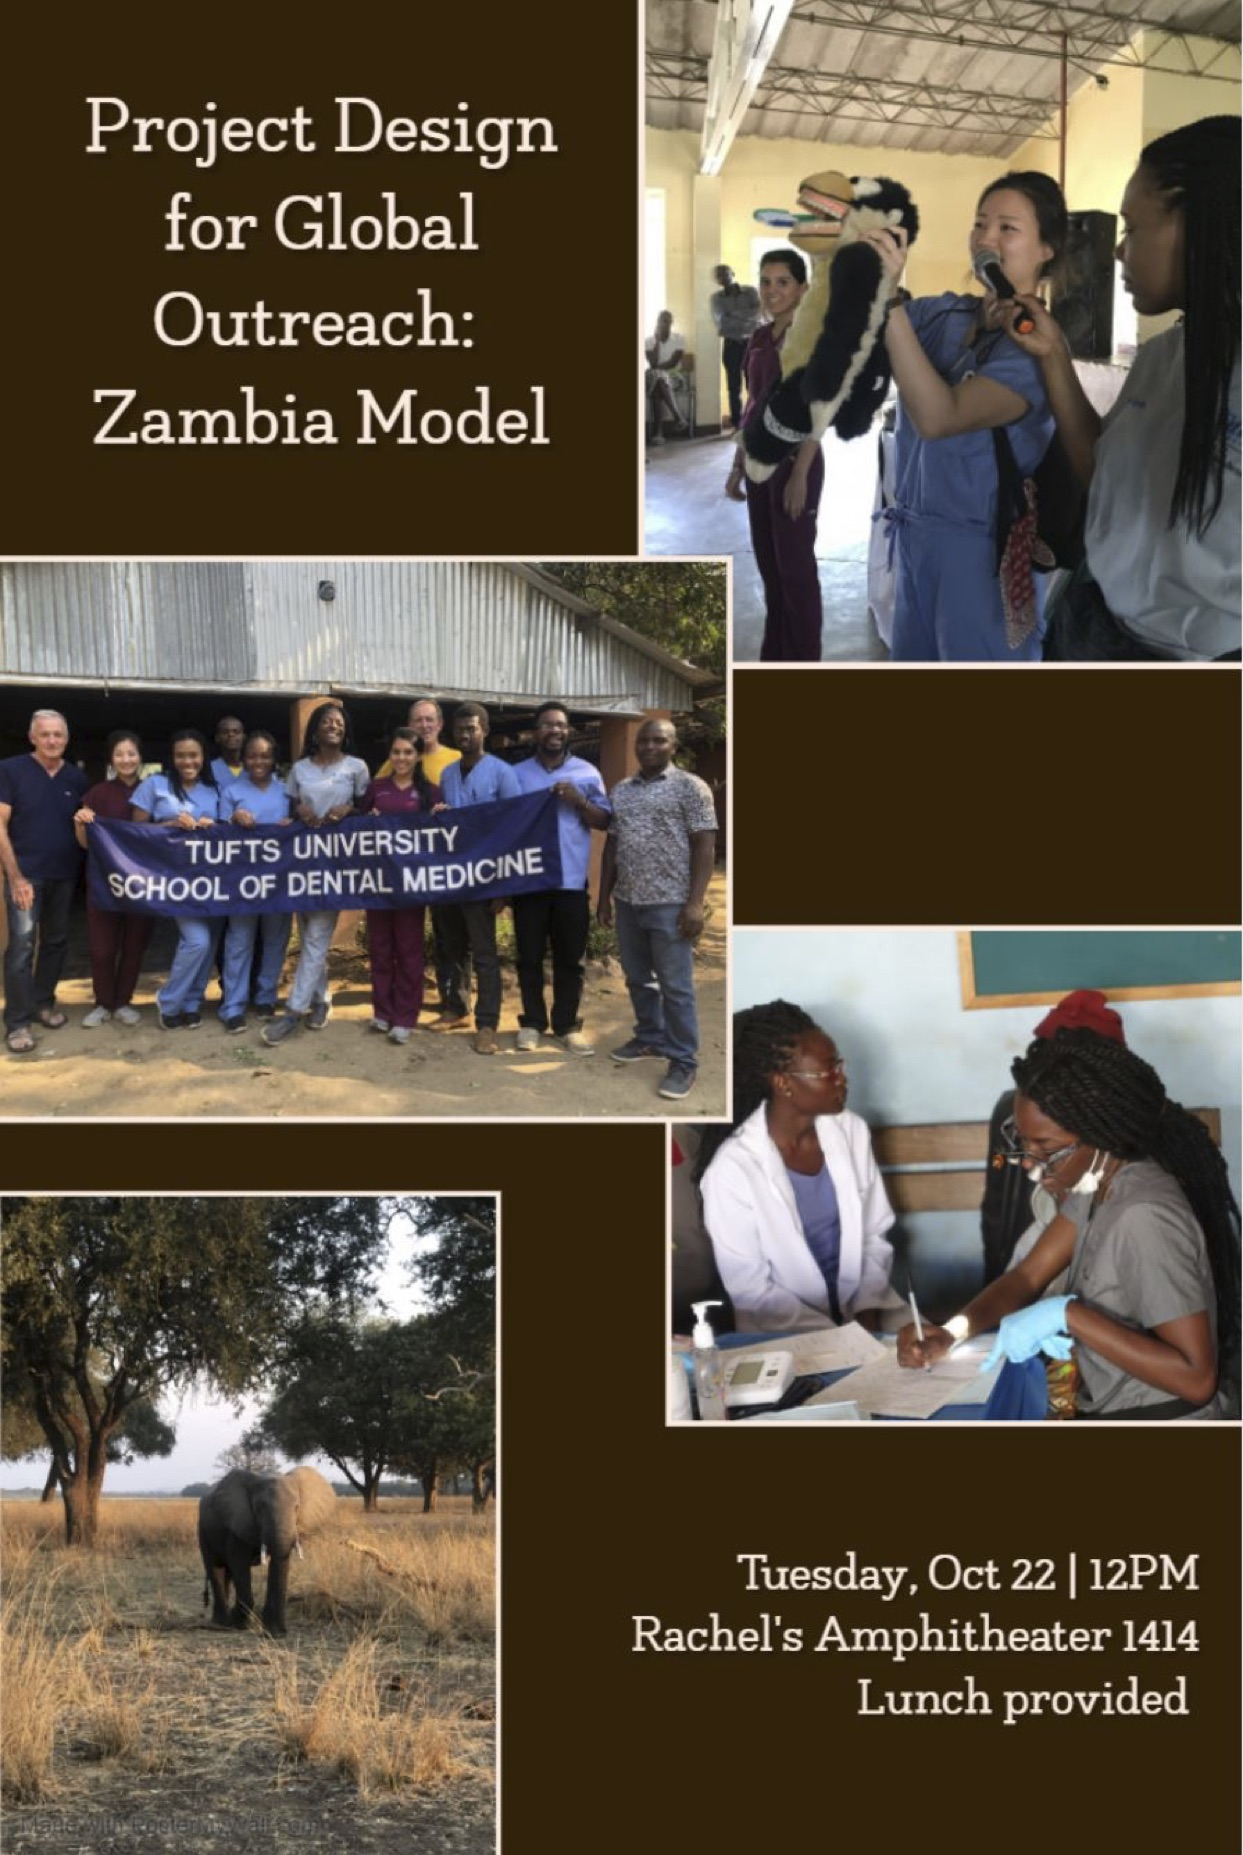 Project-Design-for-Global-Outreach-Zambia-Model-Flyer